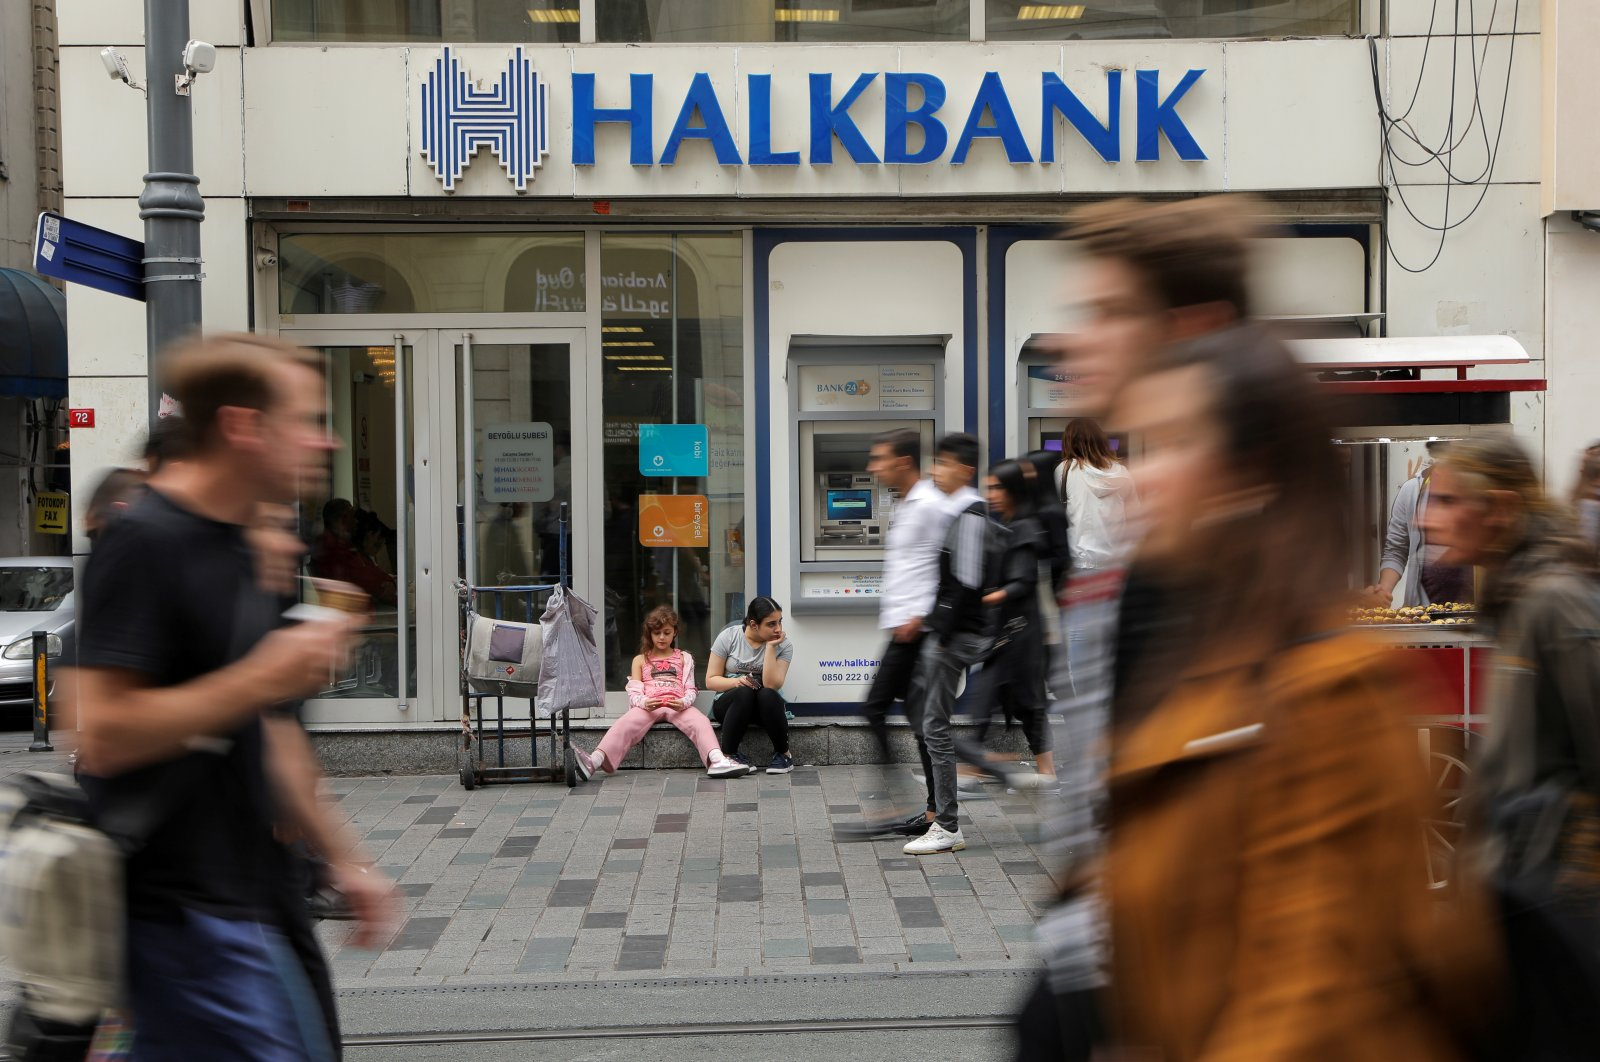 People walk past by a branch of Halkbank in Istanbul, Turkey, Oct. 16, 2019. (Reuters Photo)